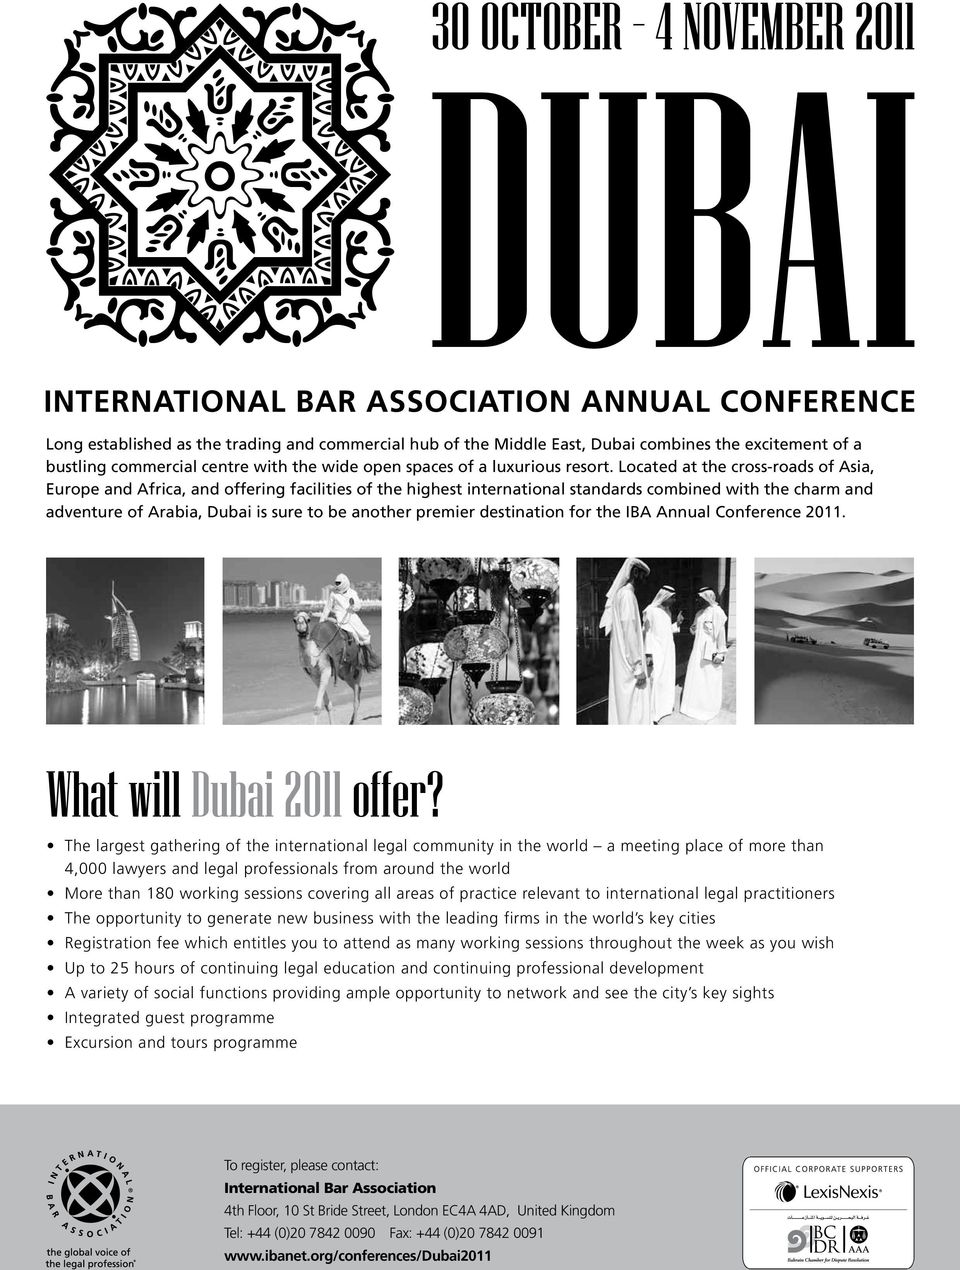 premier destination for the IBA Annual Conference 2011. What will Dubai 2011 offer?